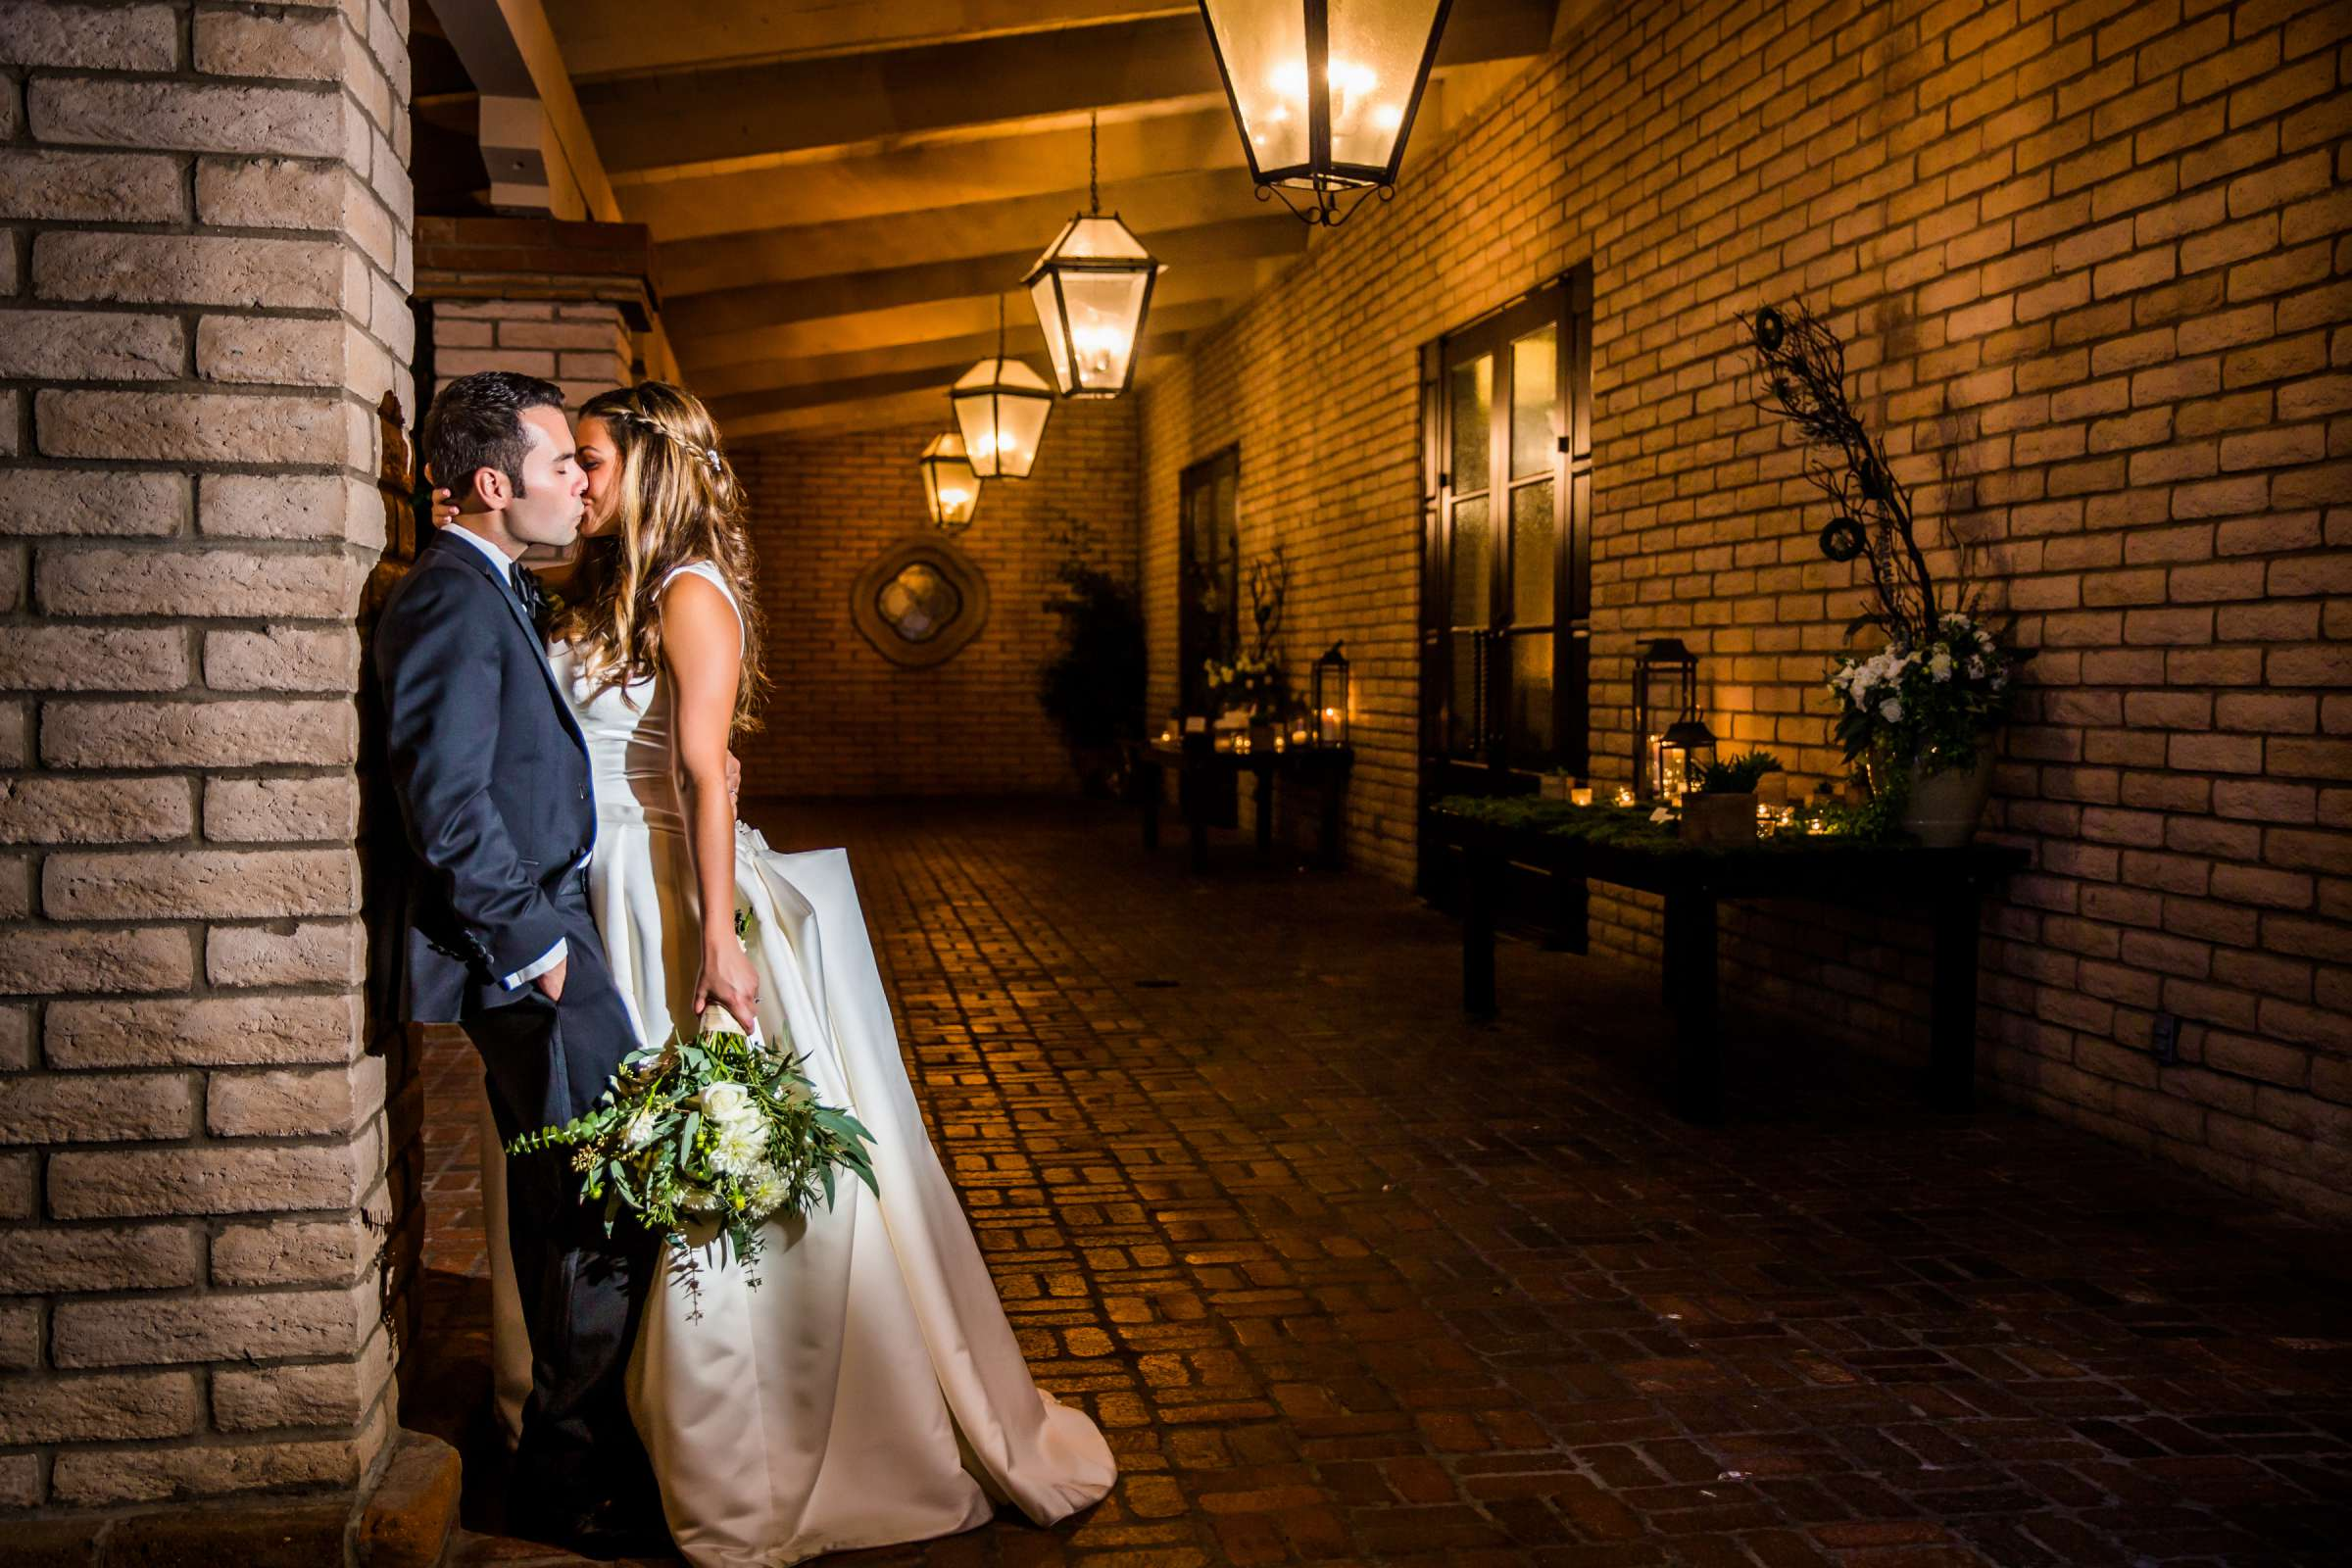 Rancho Bernardo Inn Wedding coordinated by Très Chic Events, Stefania and Nicholas Wedding Photo #67 by True Photography